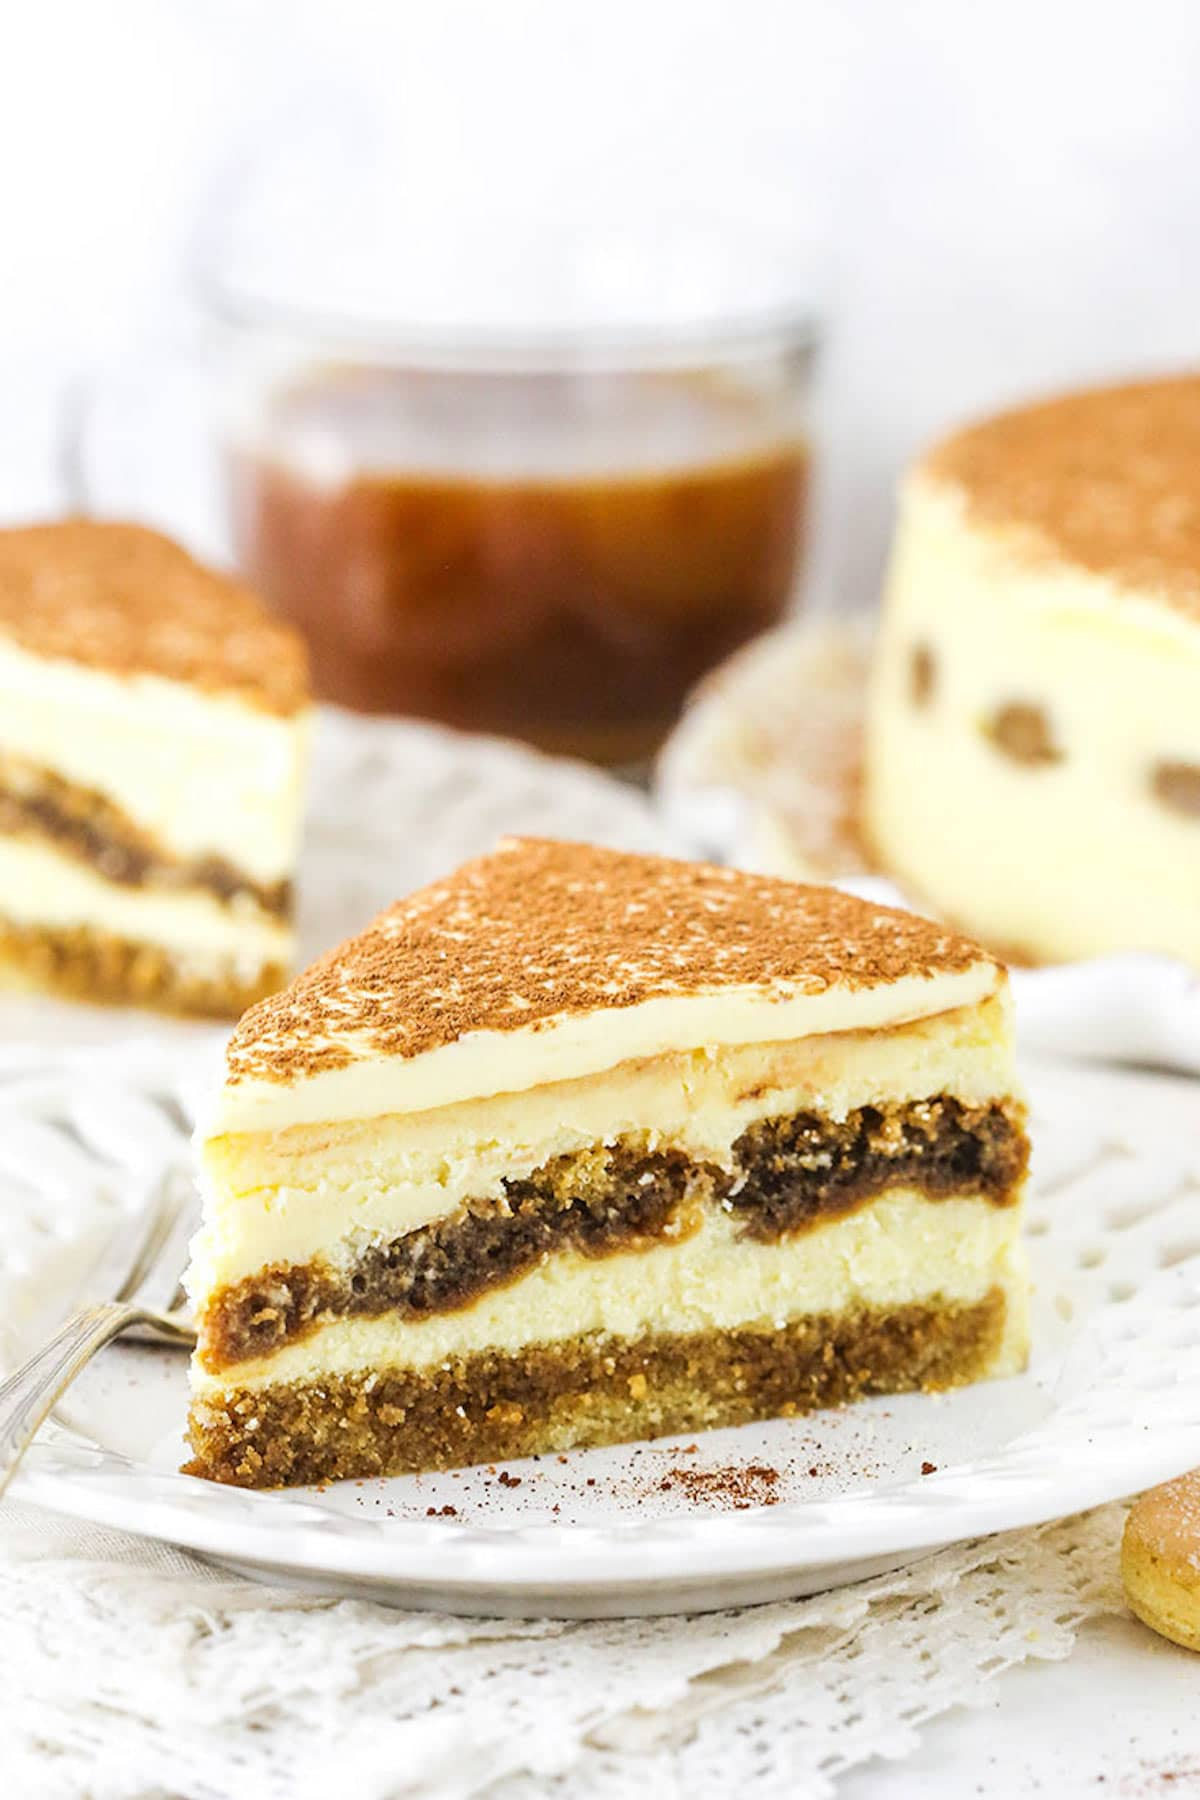 A Piece of Tiramisu Cheesecake on a Plate with a Second Slice and the Full Cake in the Background